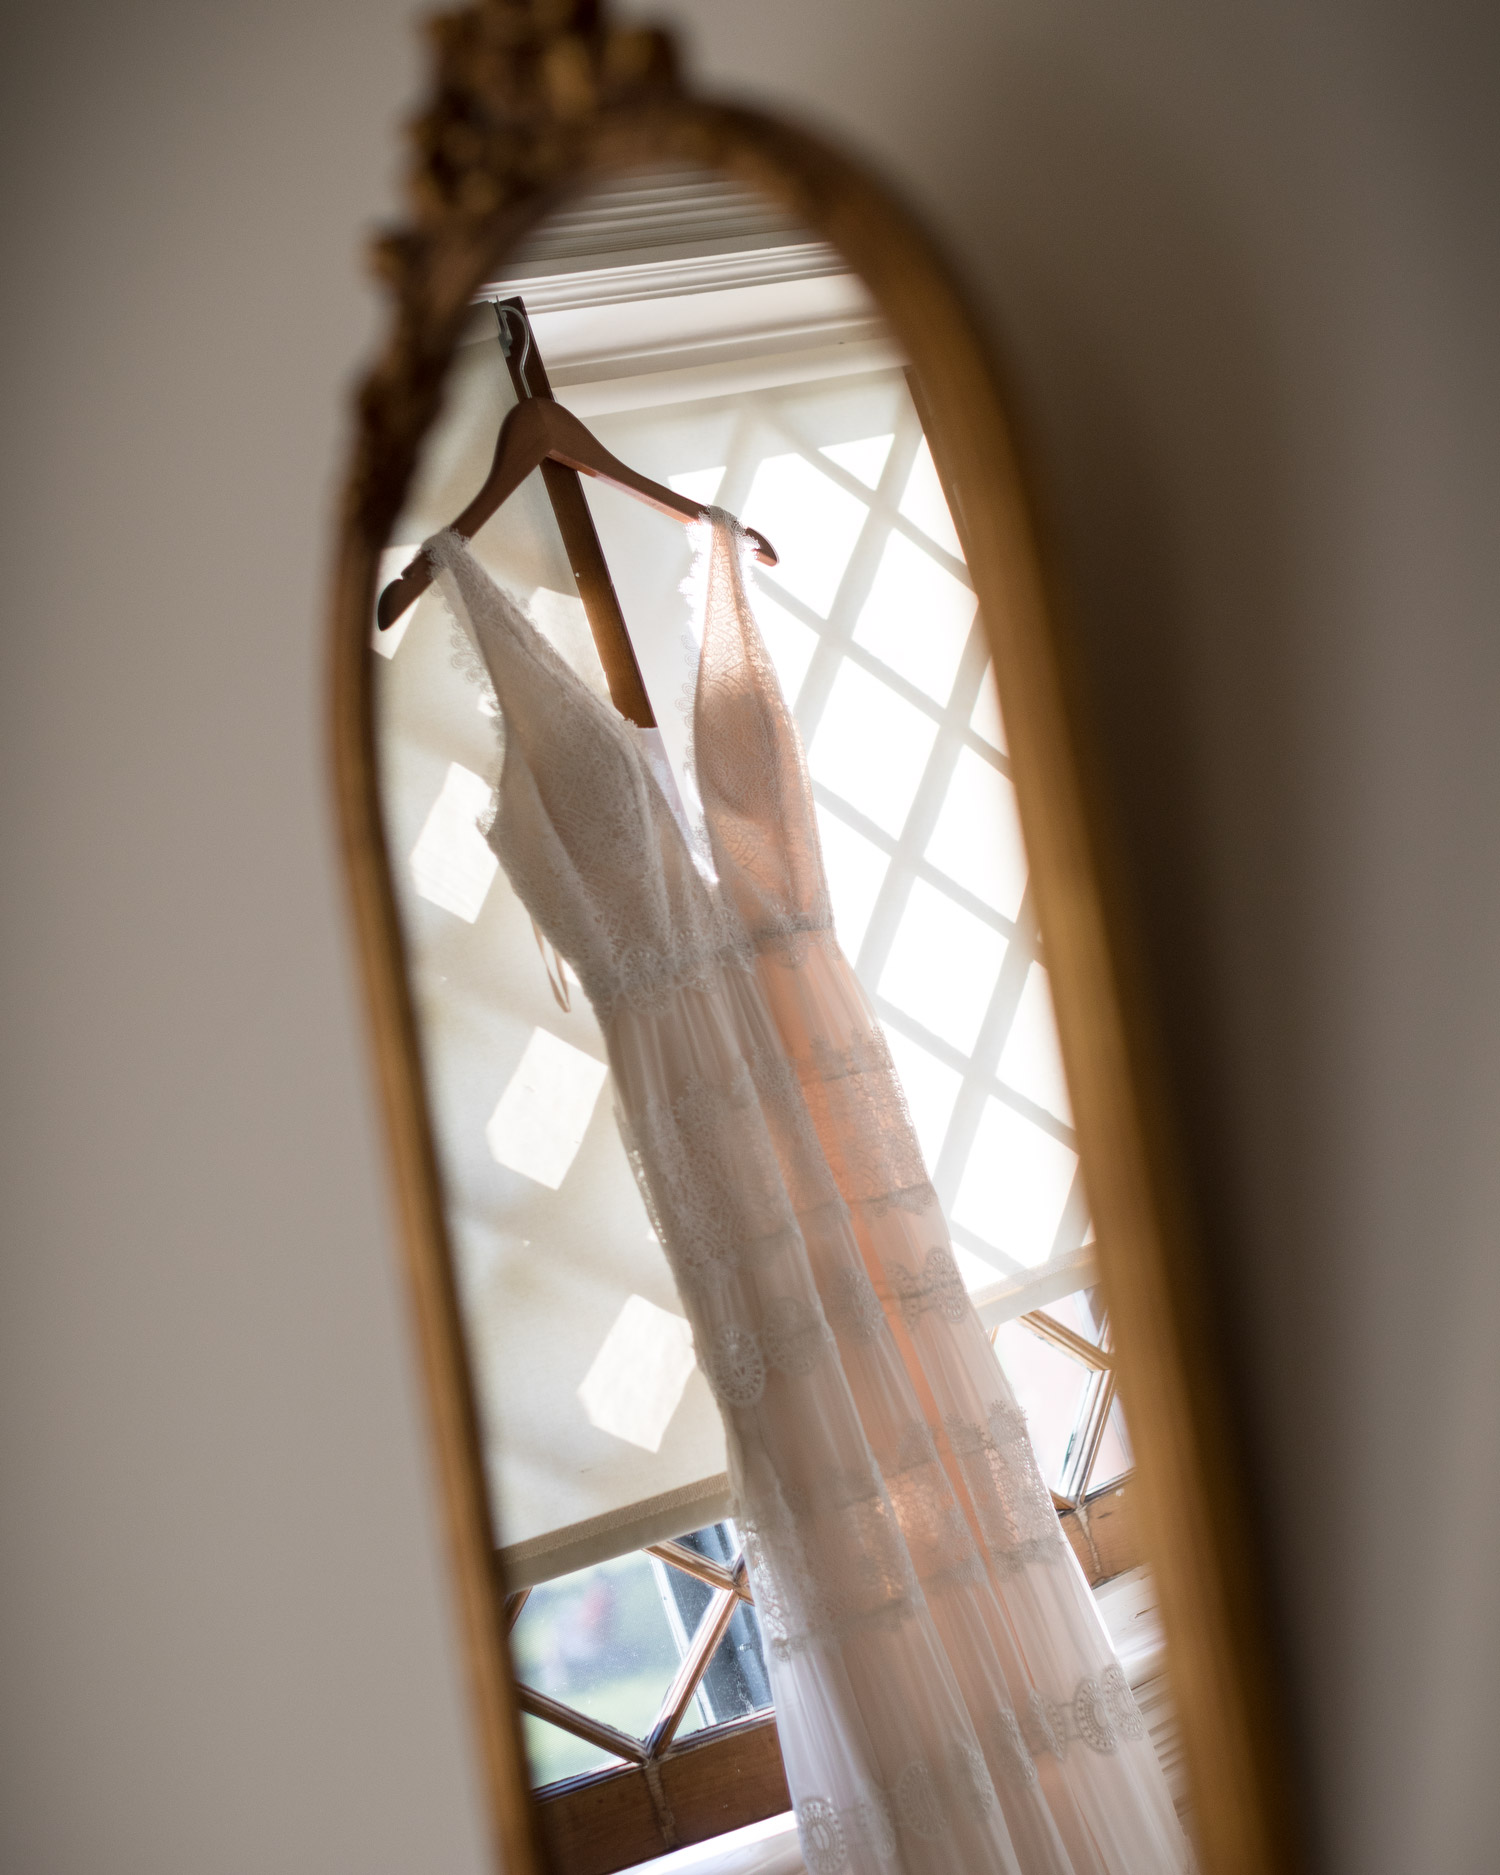 A lace wedding gown hanging in a window is reflected in an antique mirror in a guest room at the Inn at Shelburne Farms in a photo by wedding photographer Stina Booth